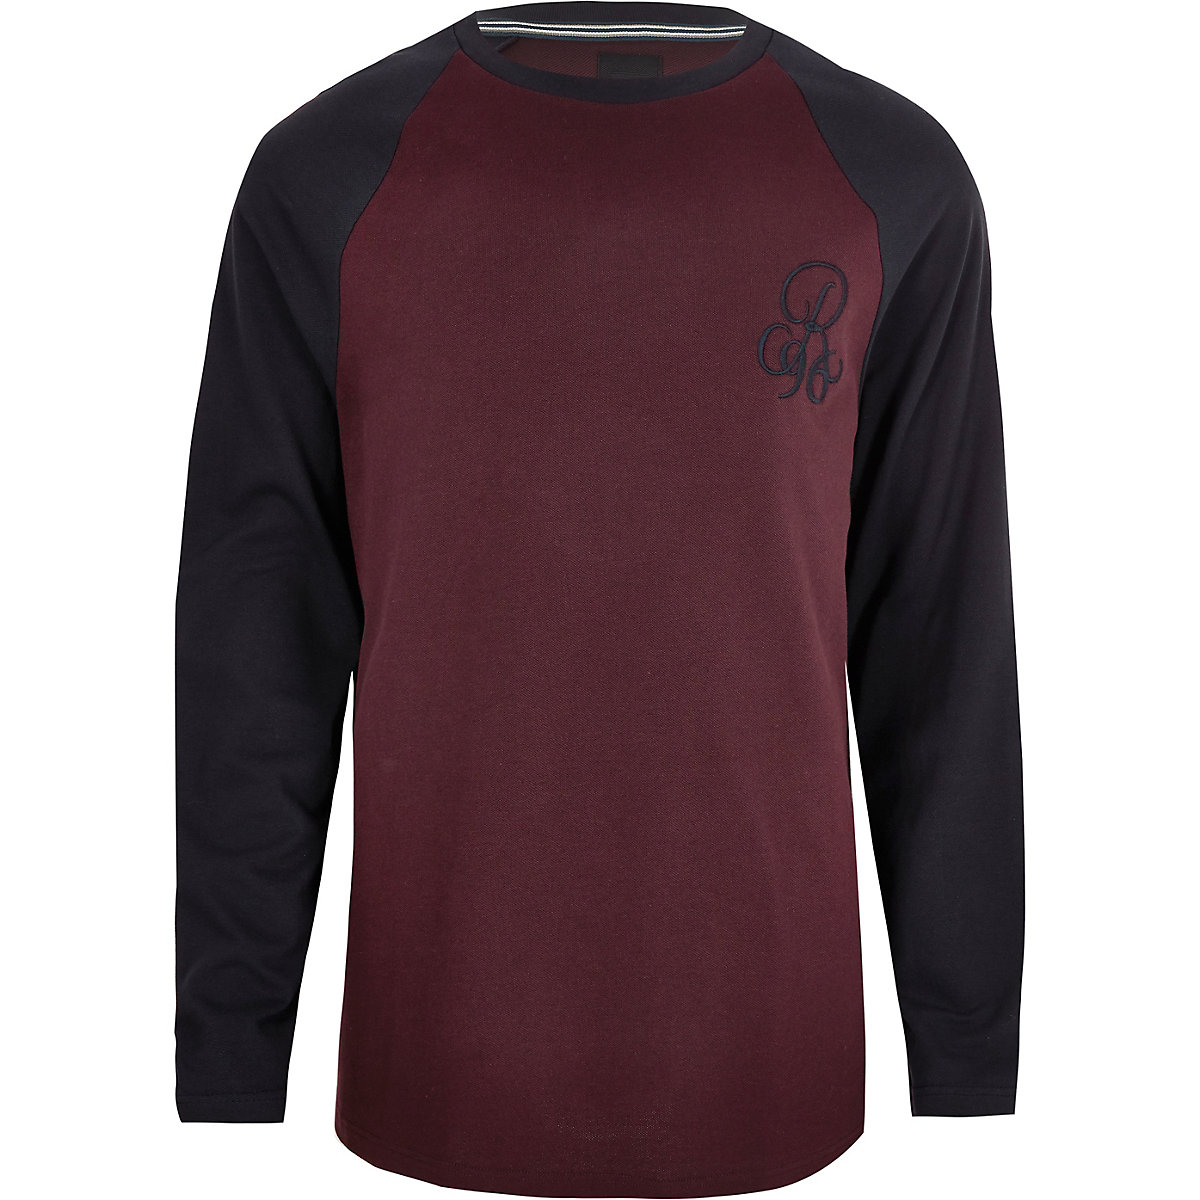 Big and Tall R96 burgundy muscle fit T-shirt